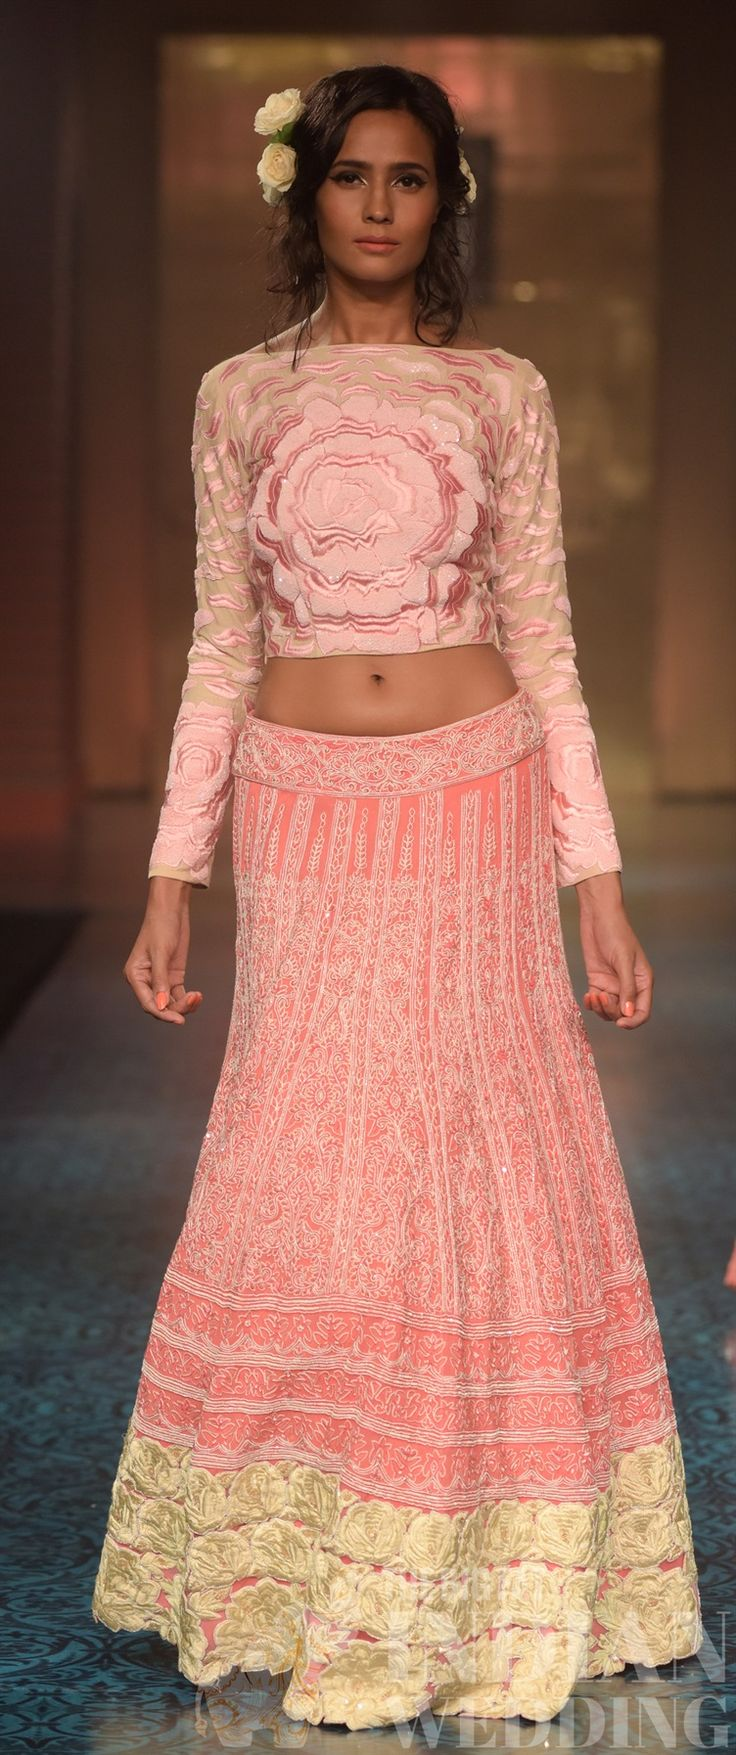 spring pink wedding inspiration from Manish Malhotra